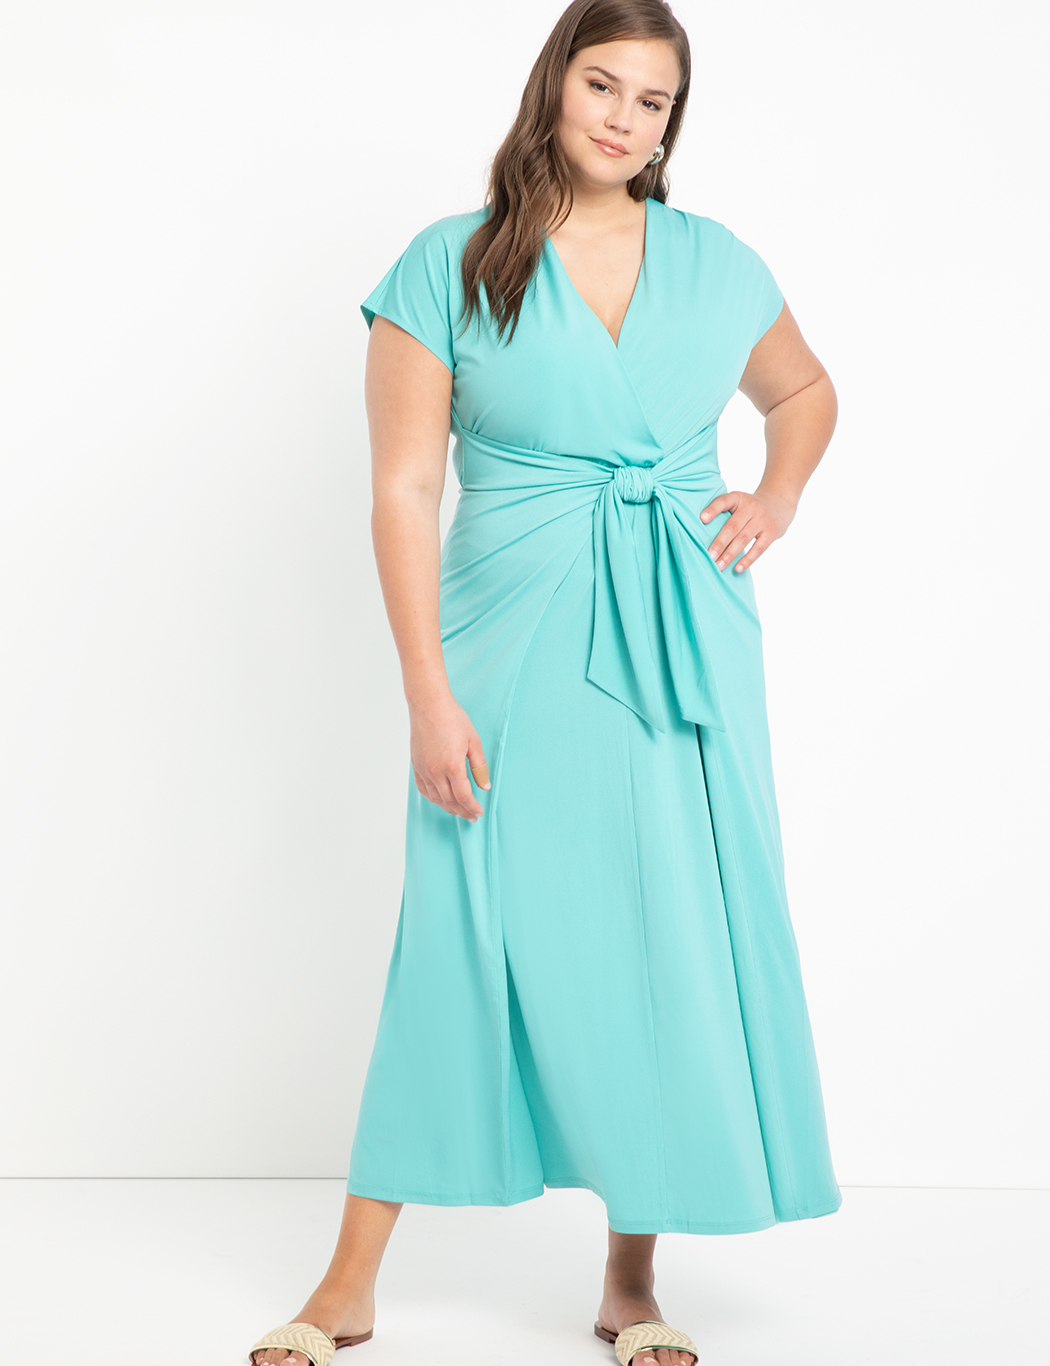 Easy Maxi Dress With Wrap Tie Skirt 12